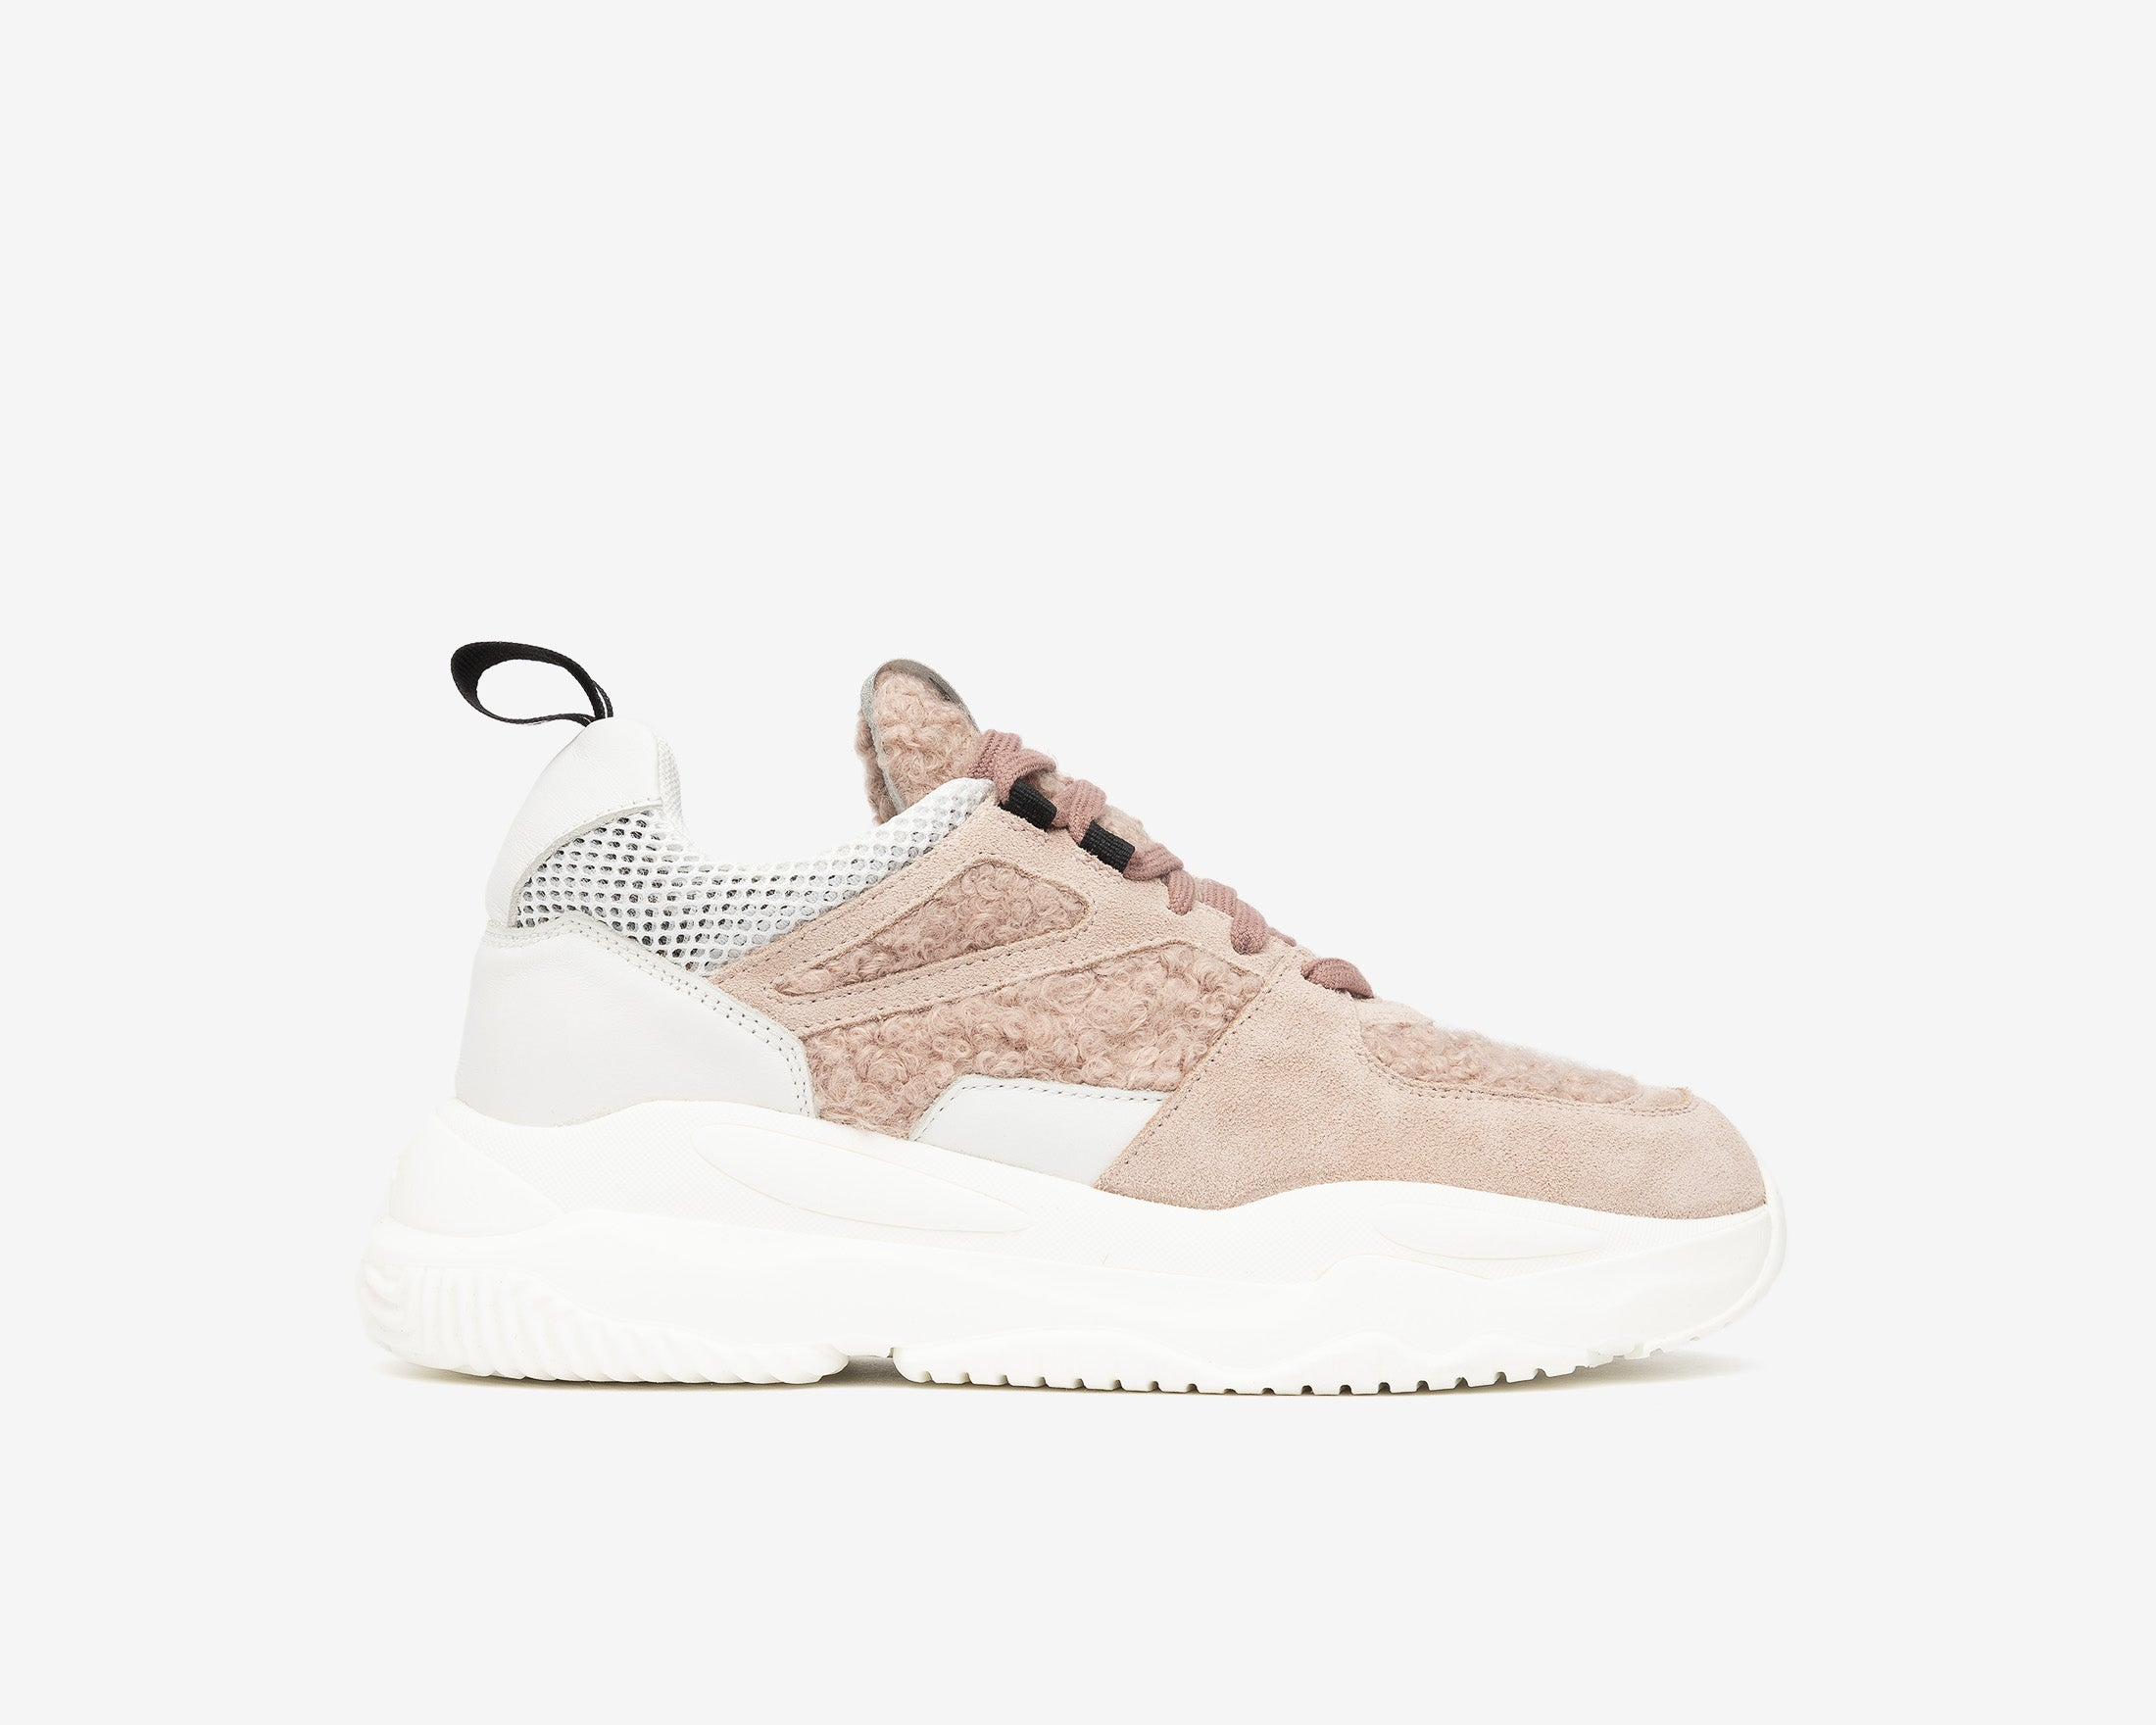 Luke Chunky Sneaker in Lamb - Profile